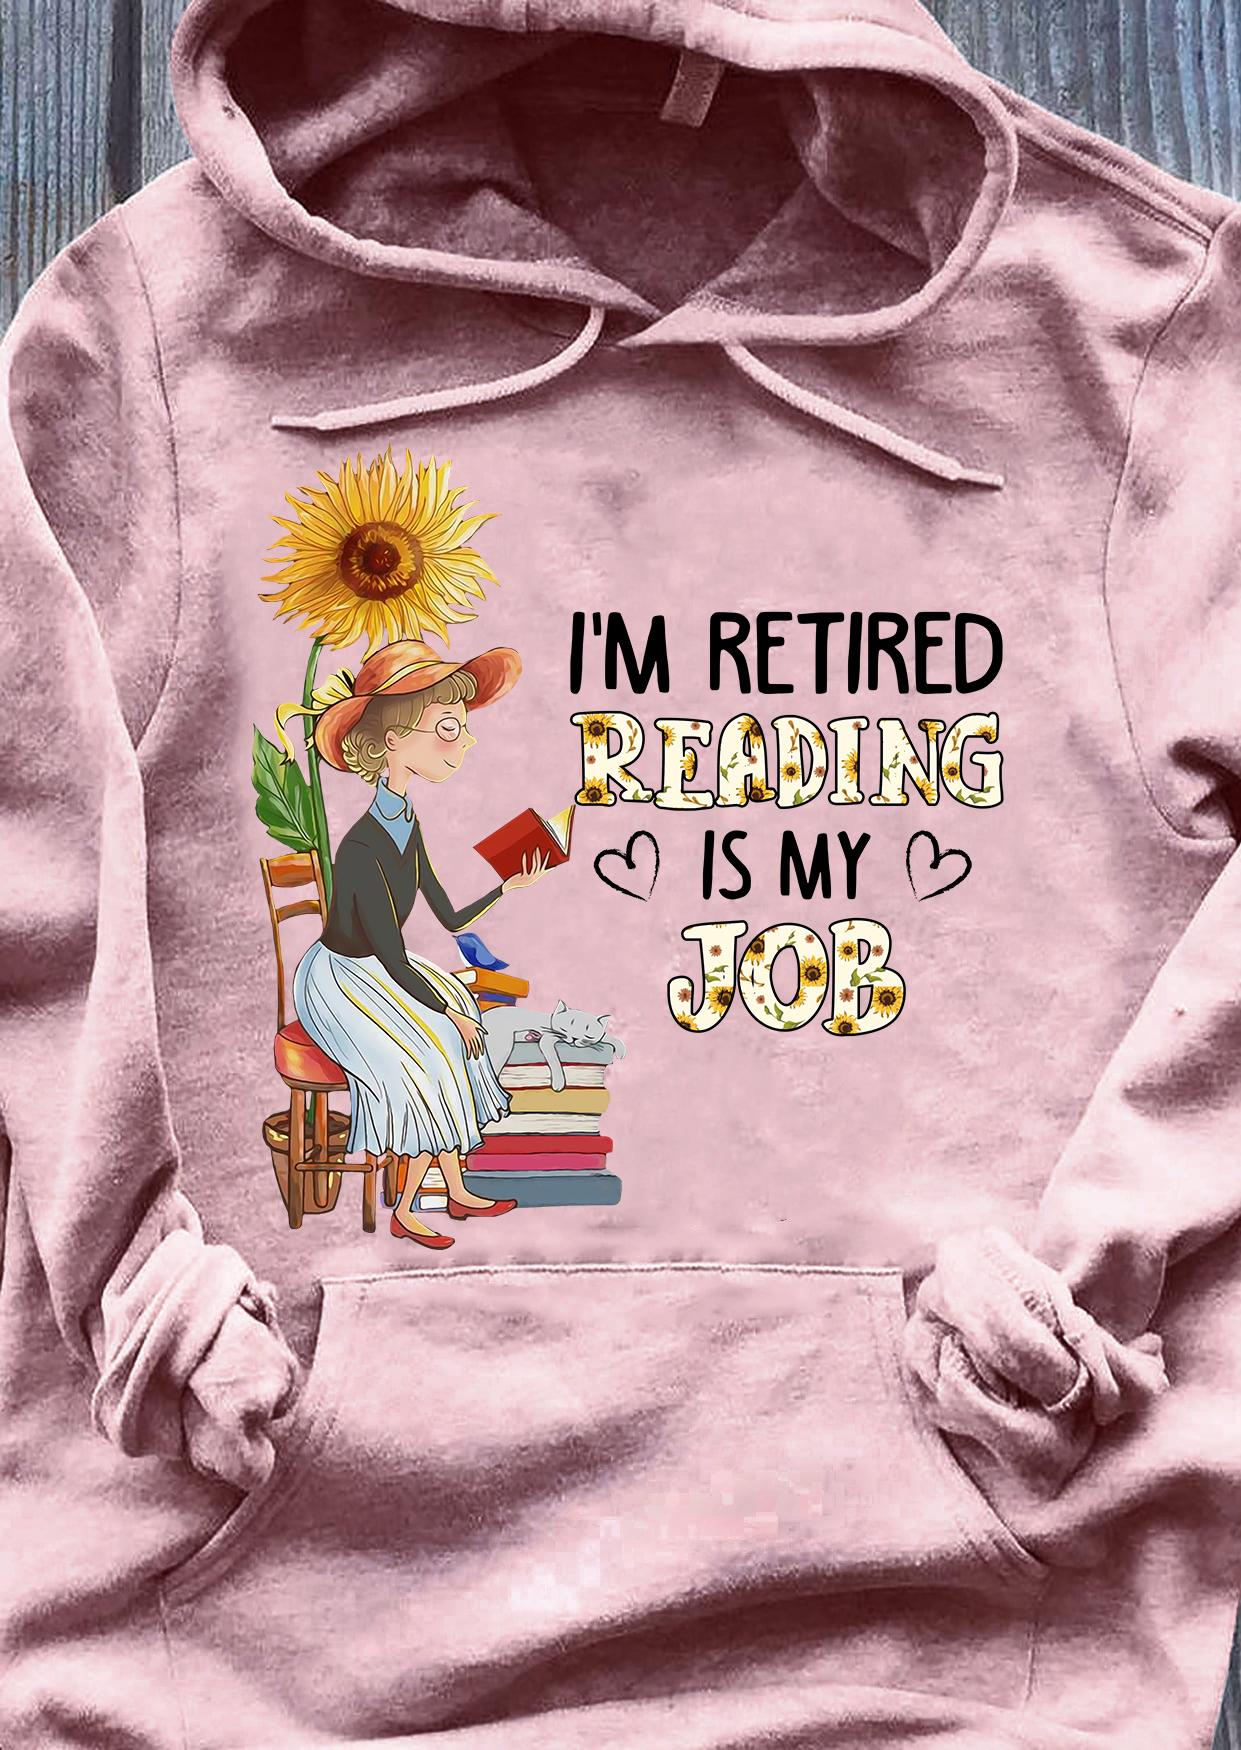 I'm retired reading is my job shirt